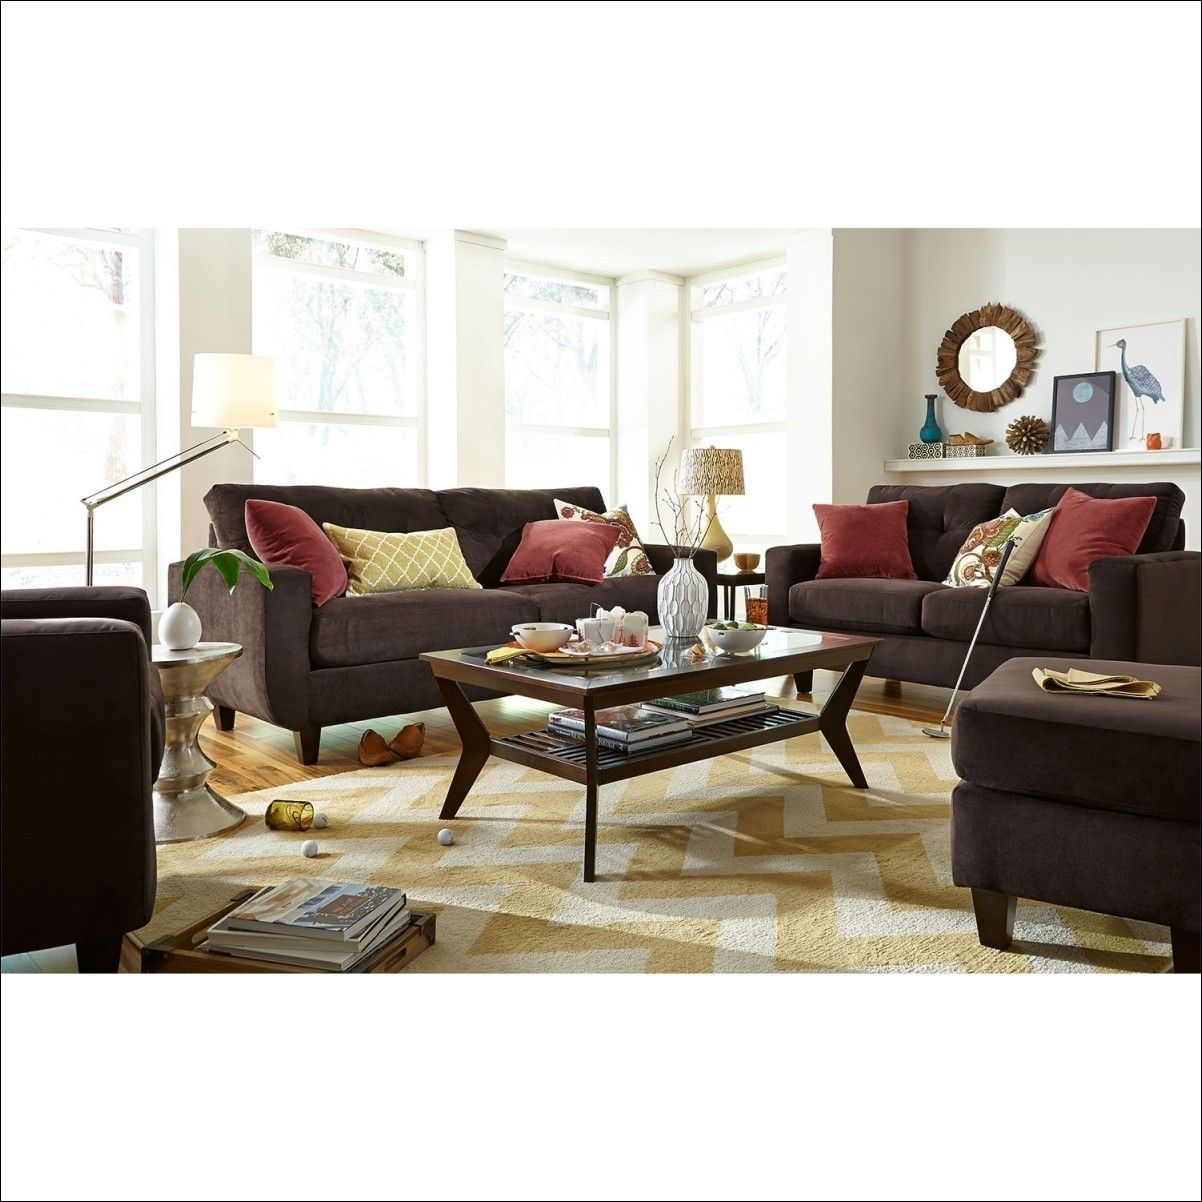 Furniture Wonderful Value City Furniture Outlet Value City With